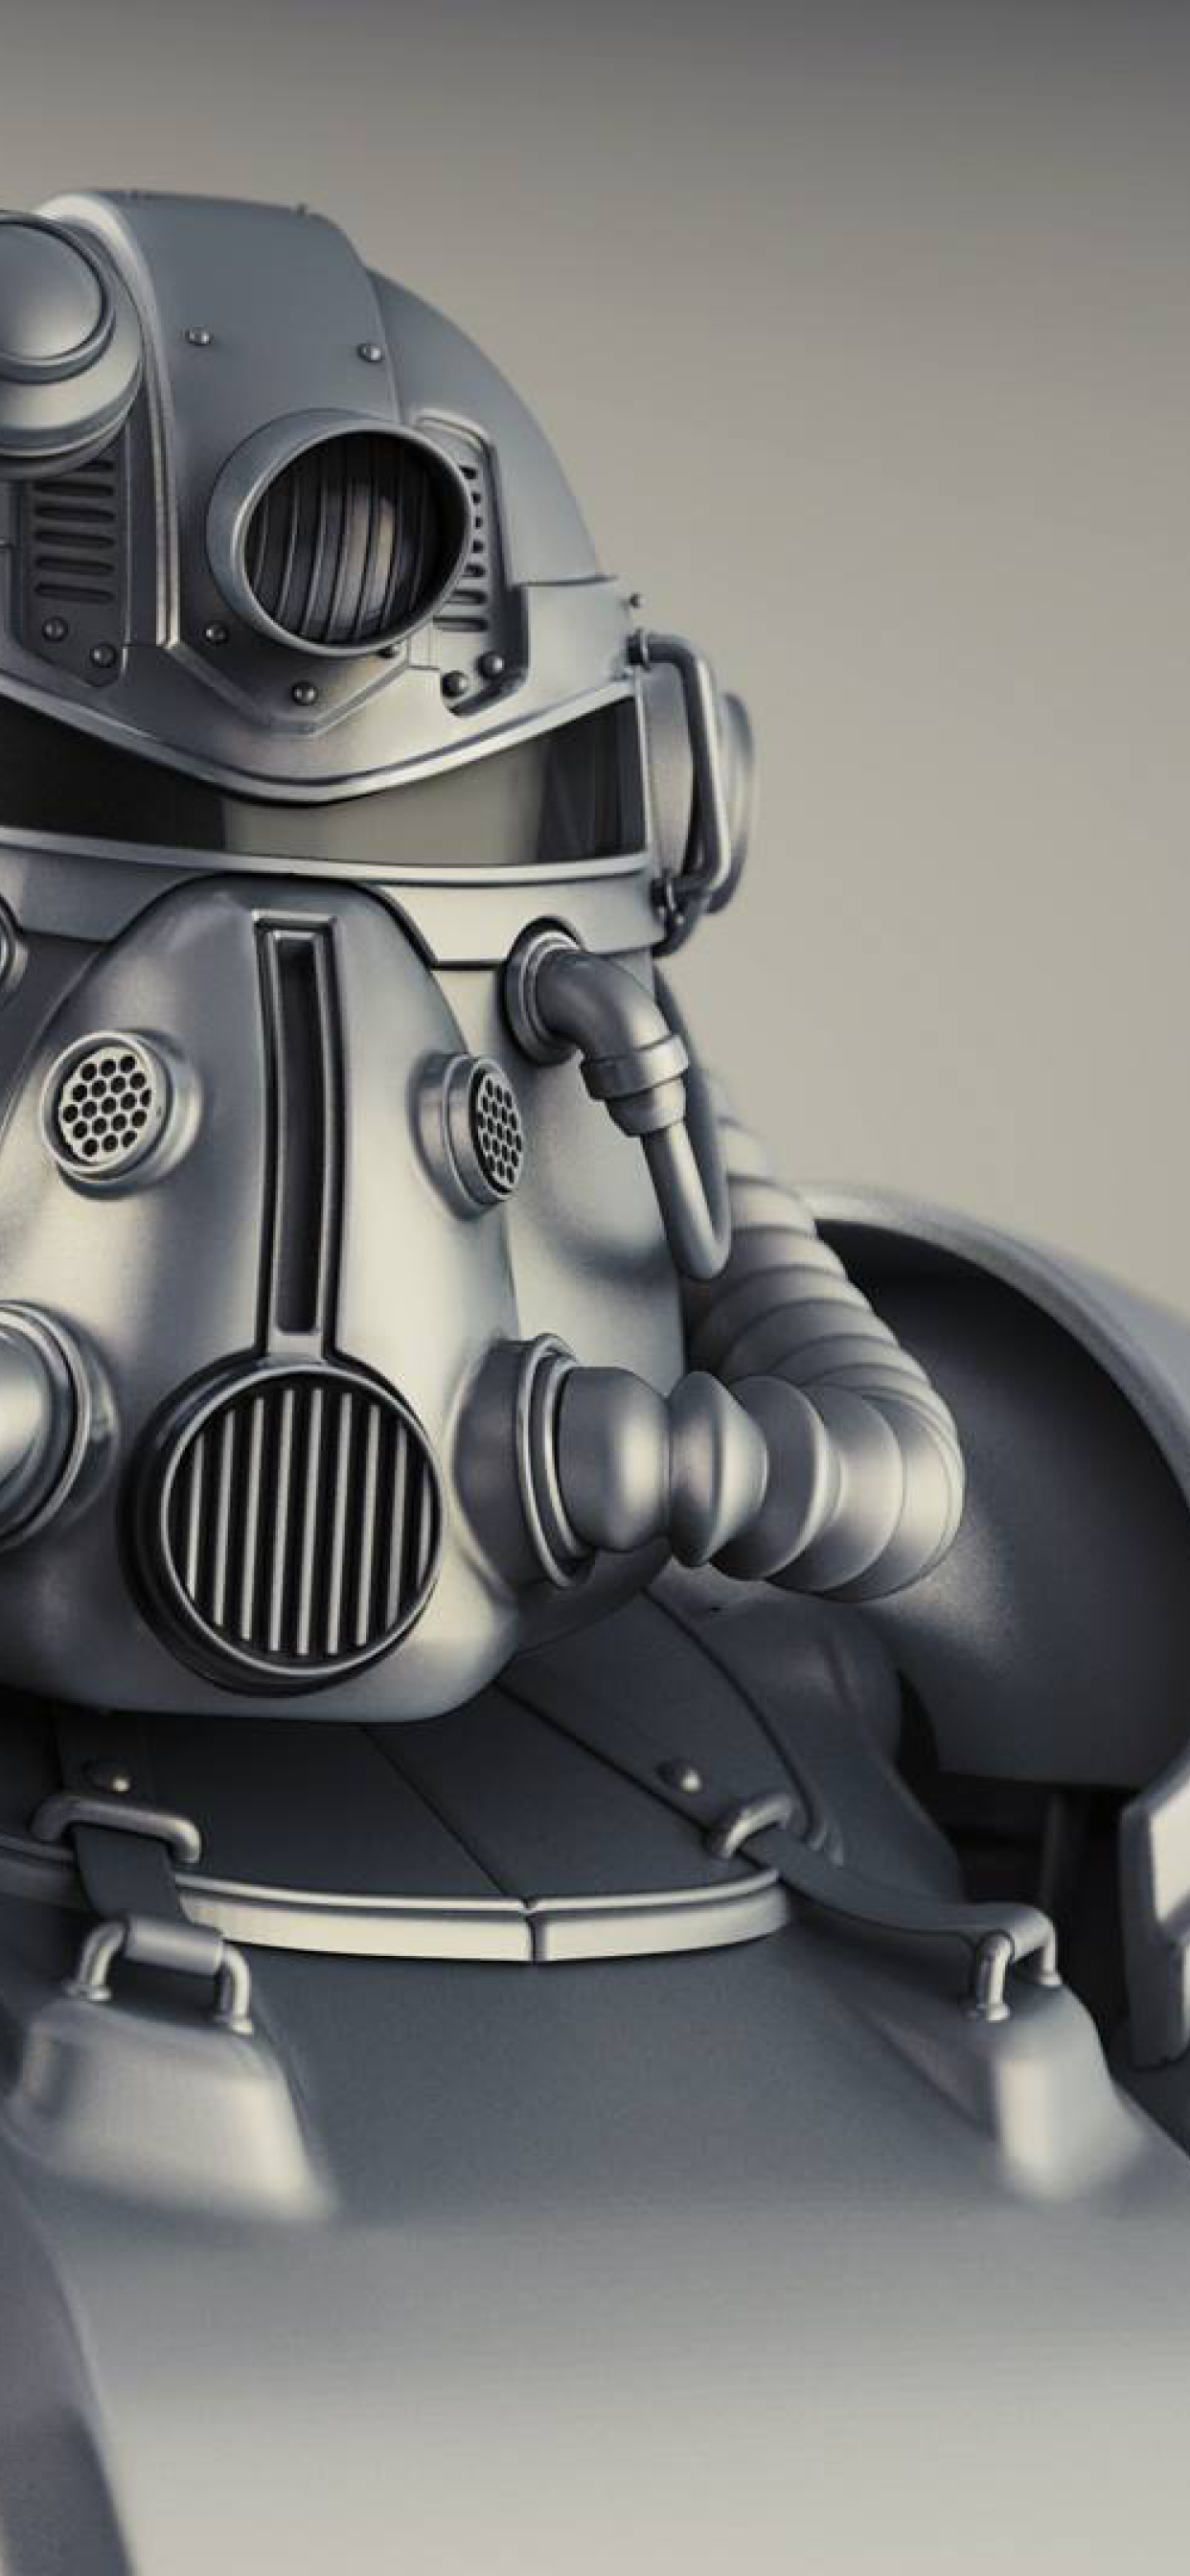 1242x2688 Fallout 4 T 51b Power Armor Iphone Xs Max Wallpaper